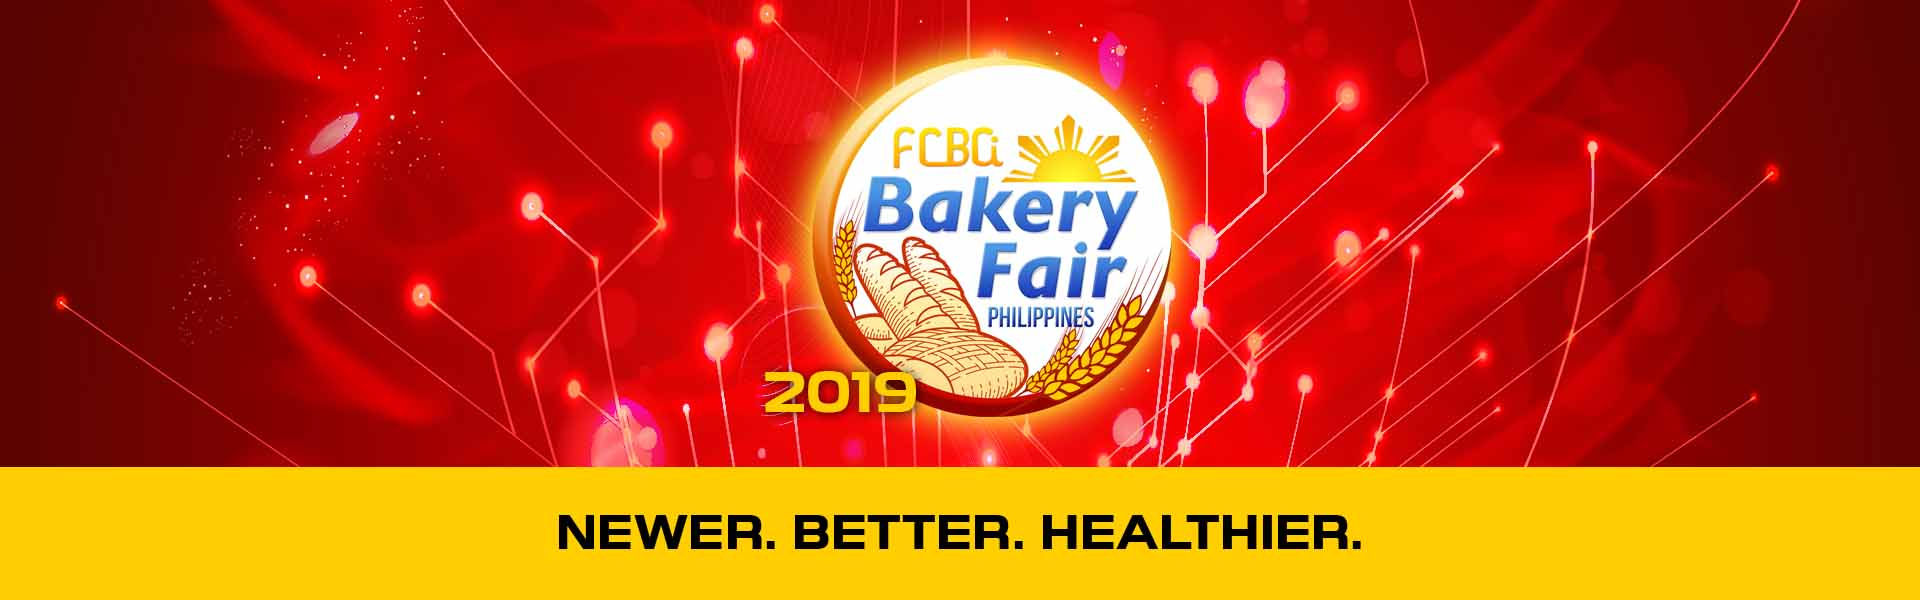 Newer  Better  Healthier – Filipino-Chinese Bakery Association Inc